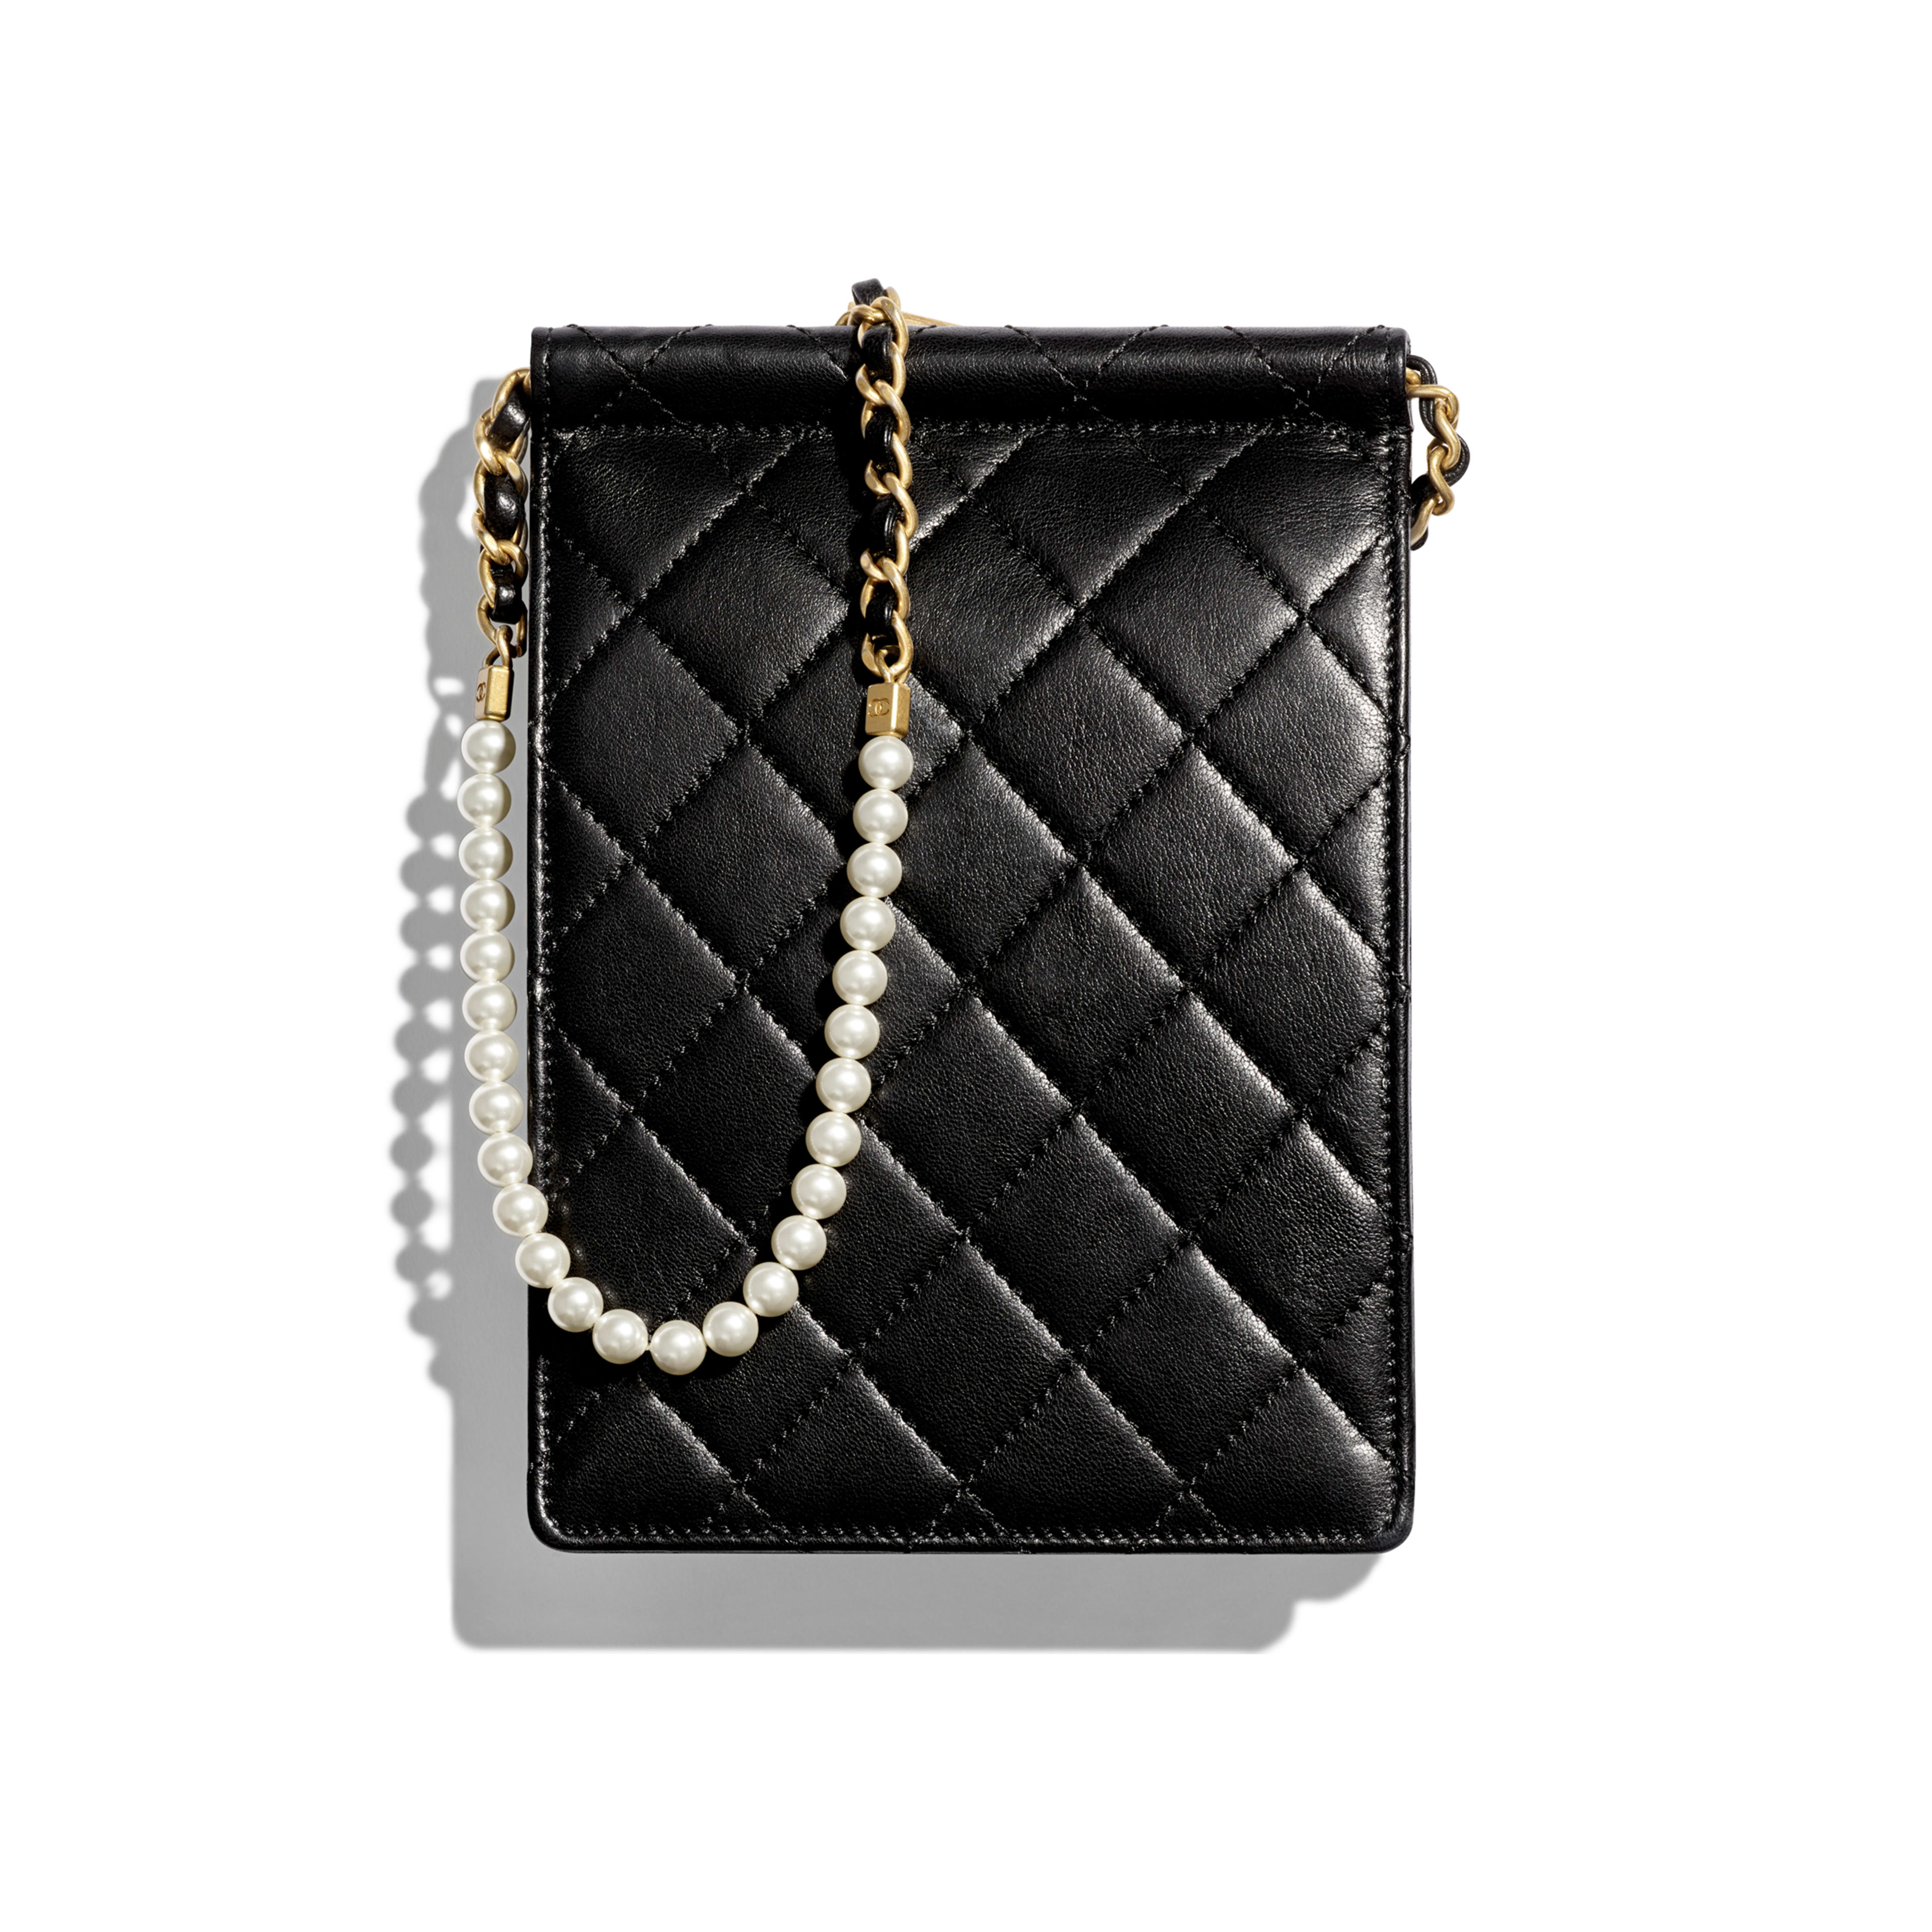 Clutch with Chain - Black - Lambskin, Imitation Pearls & Gold-Tone Metal - Alternative view - see full sized version